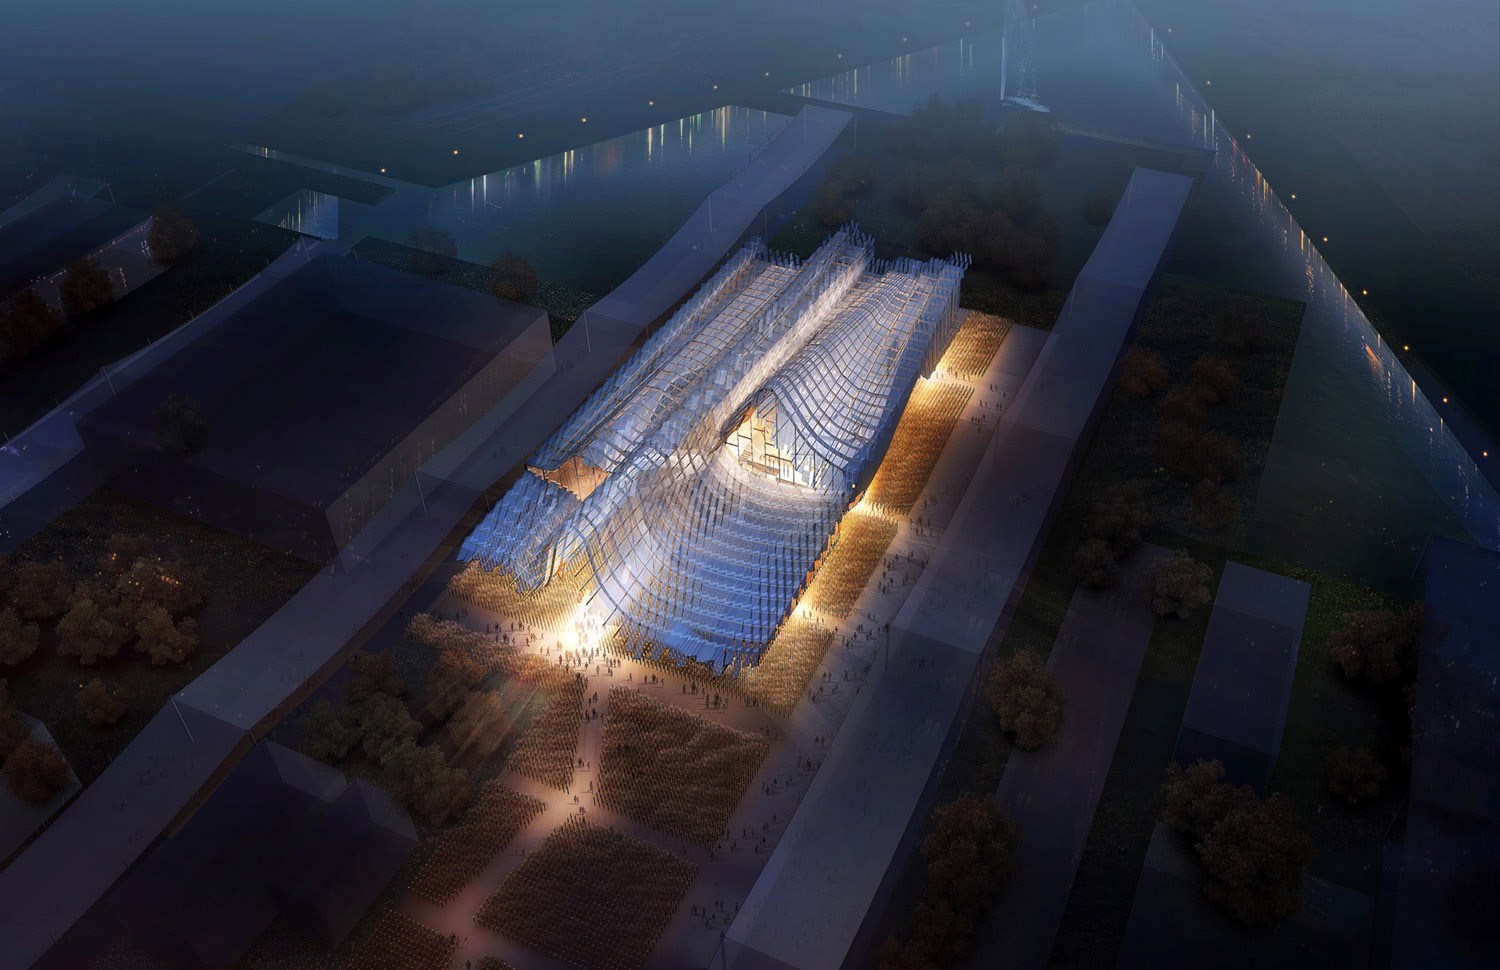 China Pavilion at the 2015 Milan Expo designed by Tsinghua University and Studio Link-Arc